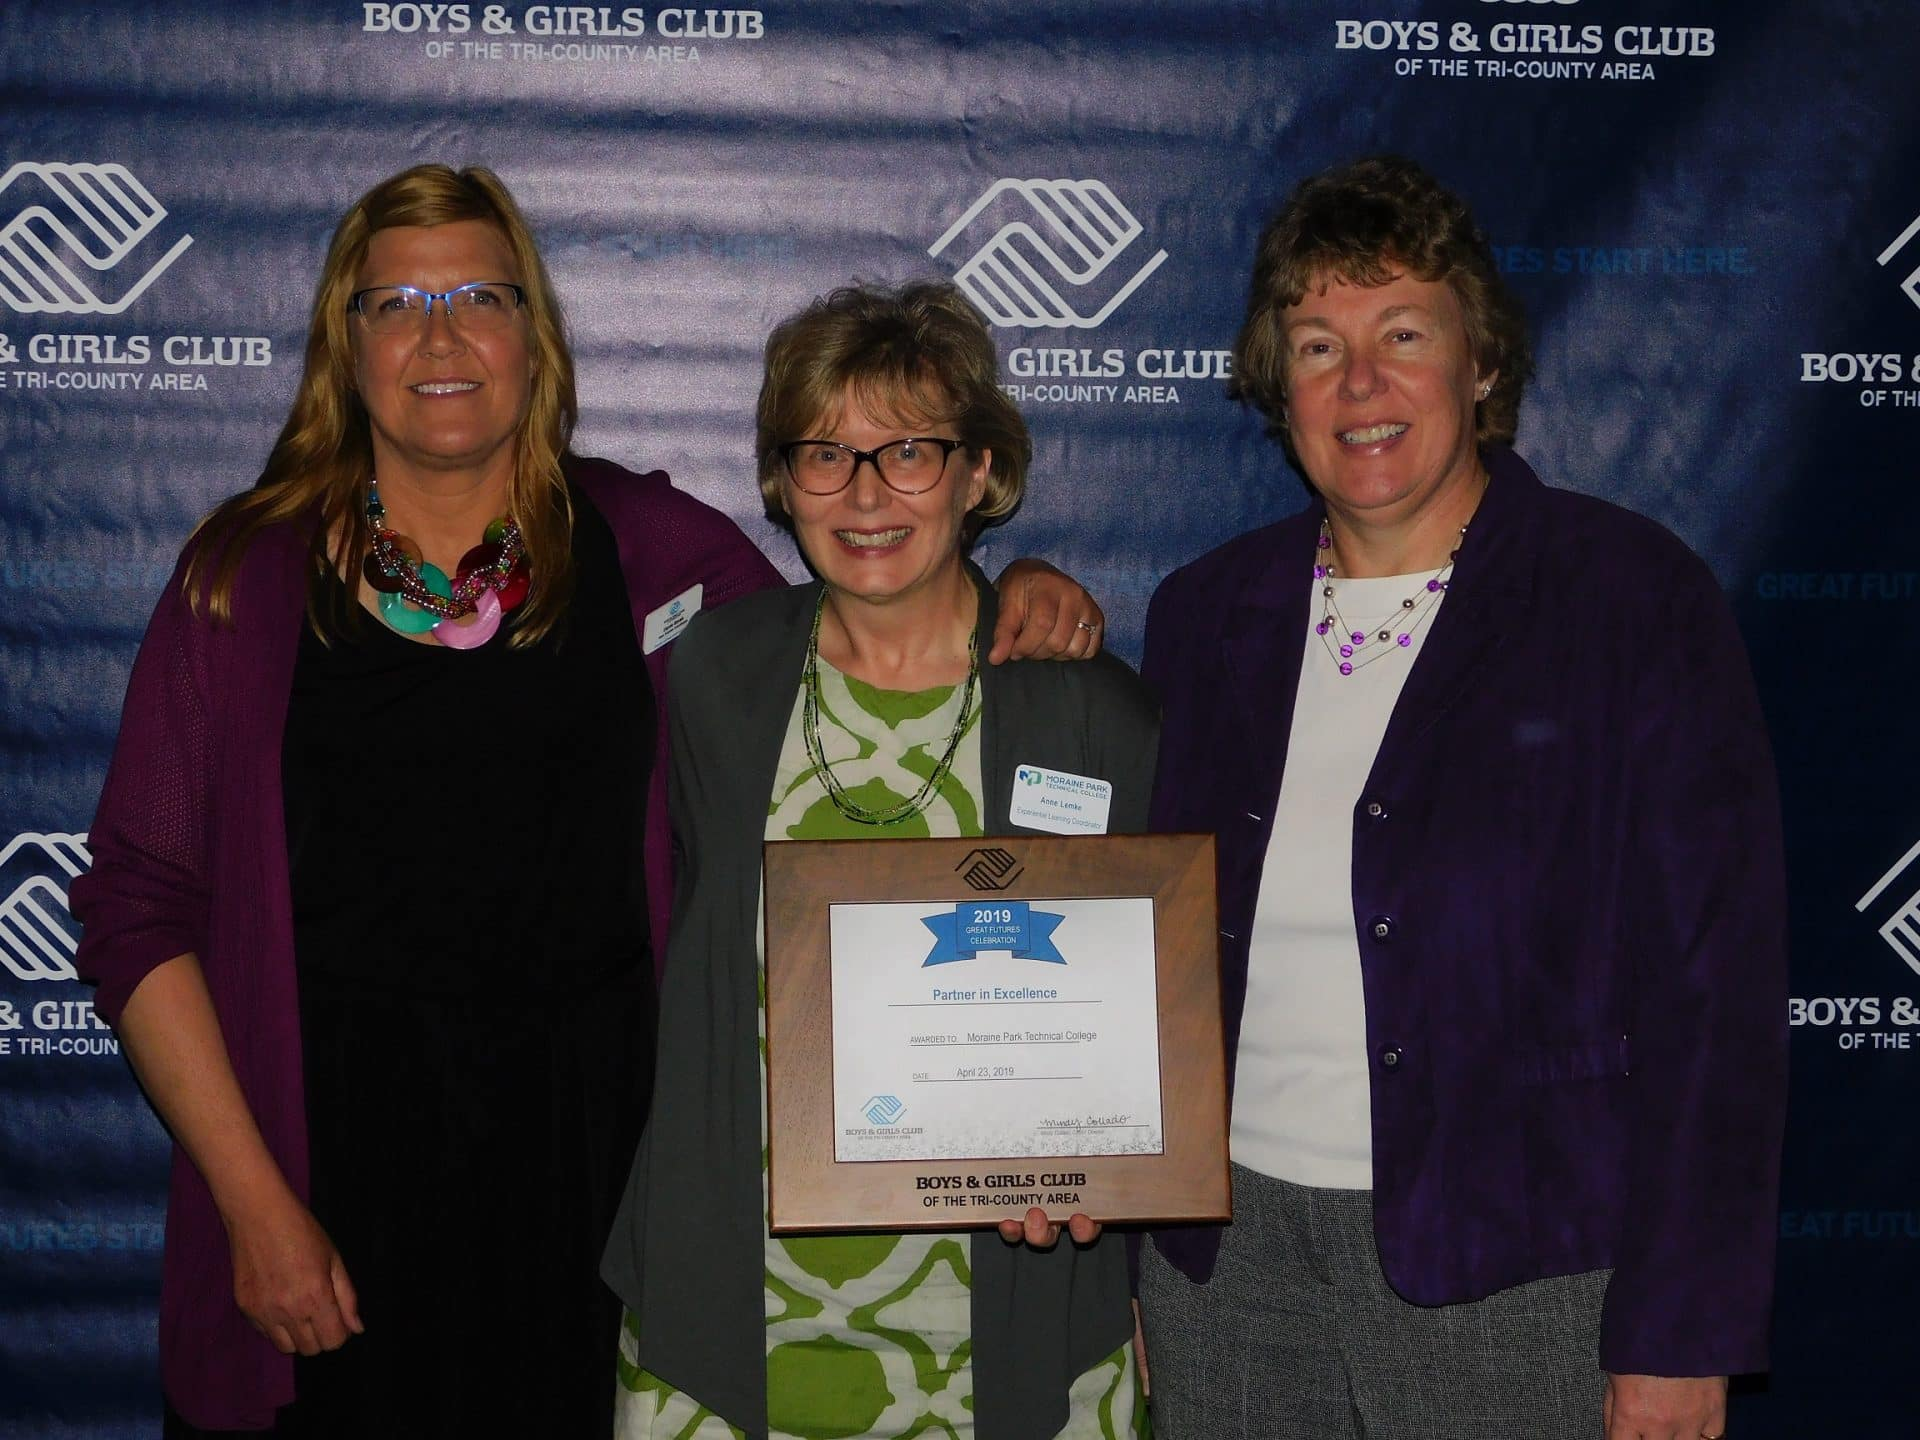 boys and girls club award